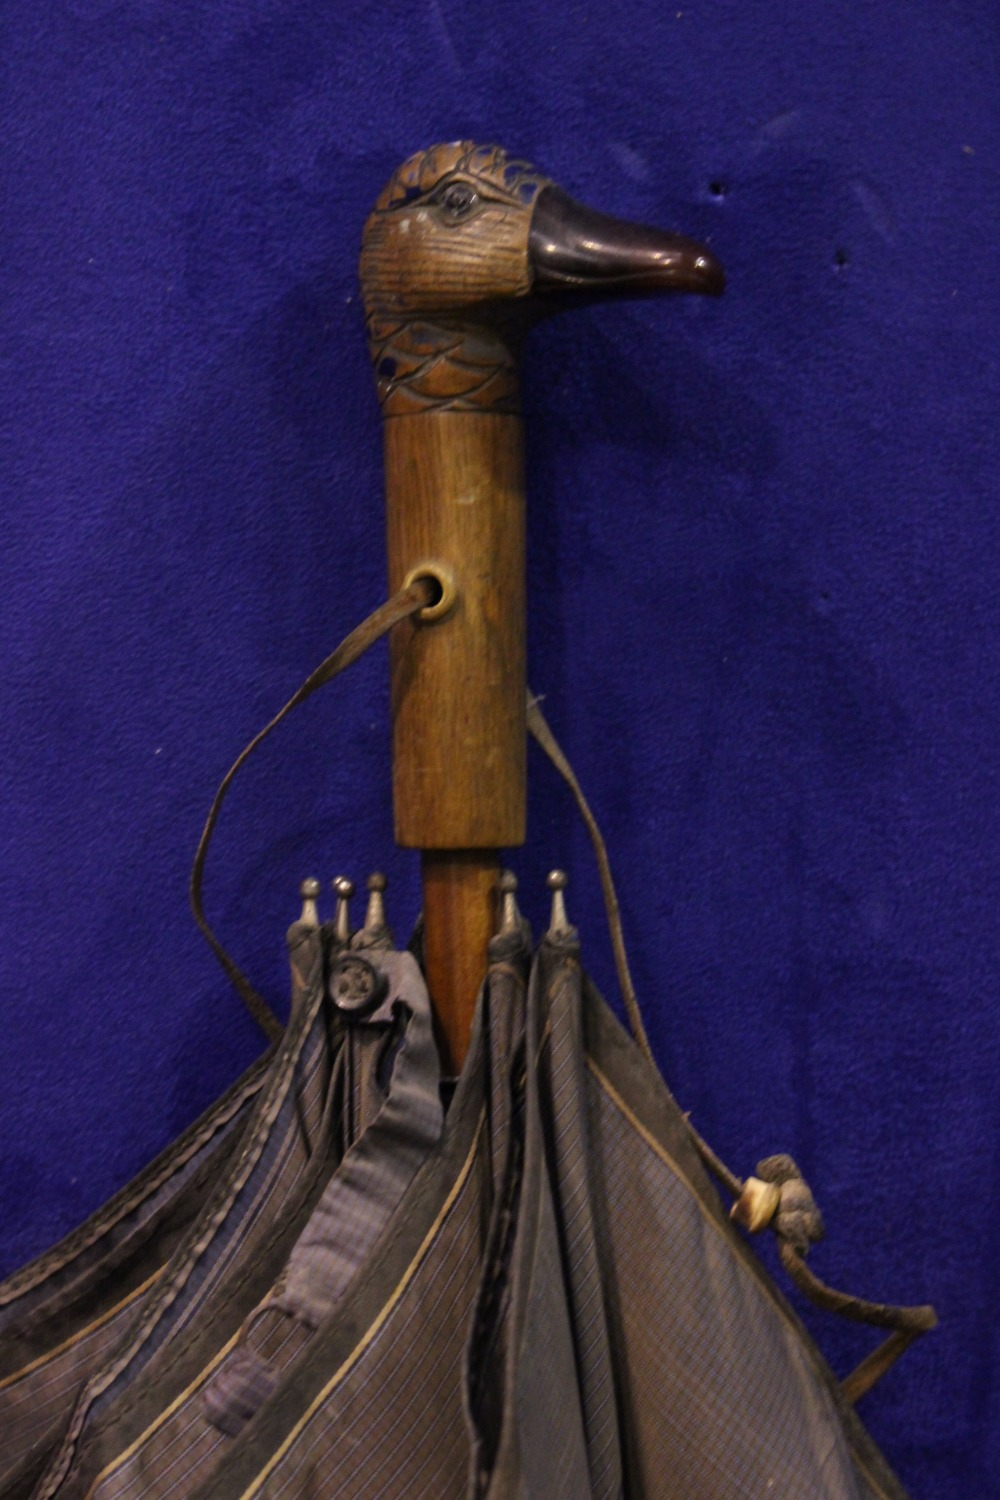 """A LADY'S PARASOL / UMBRELLA, with carved duck head handle, by the maker H. Johnson Ltd, 25"""" long, - Image 2 of 5"""